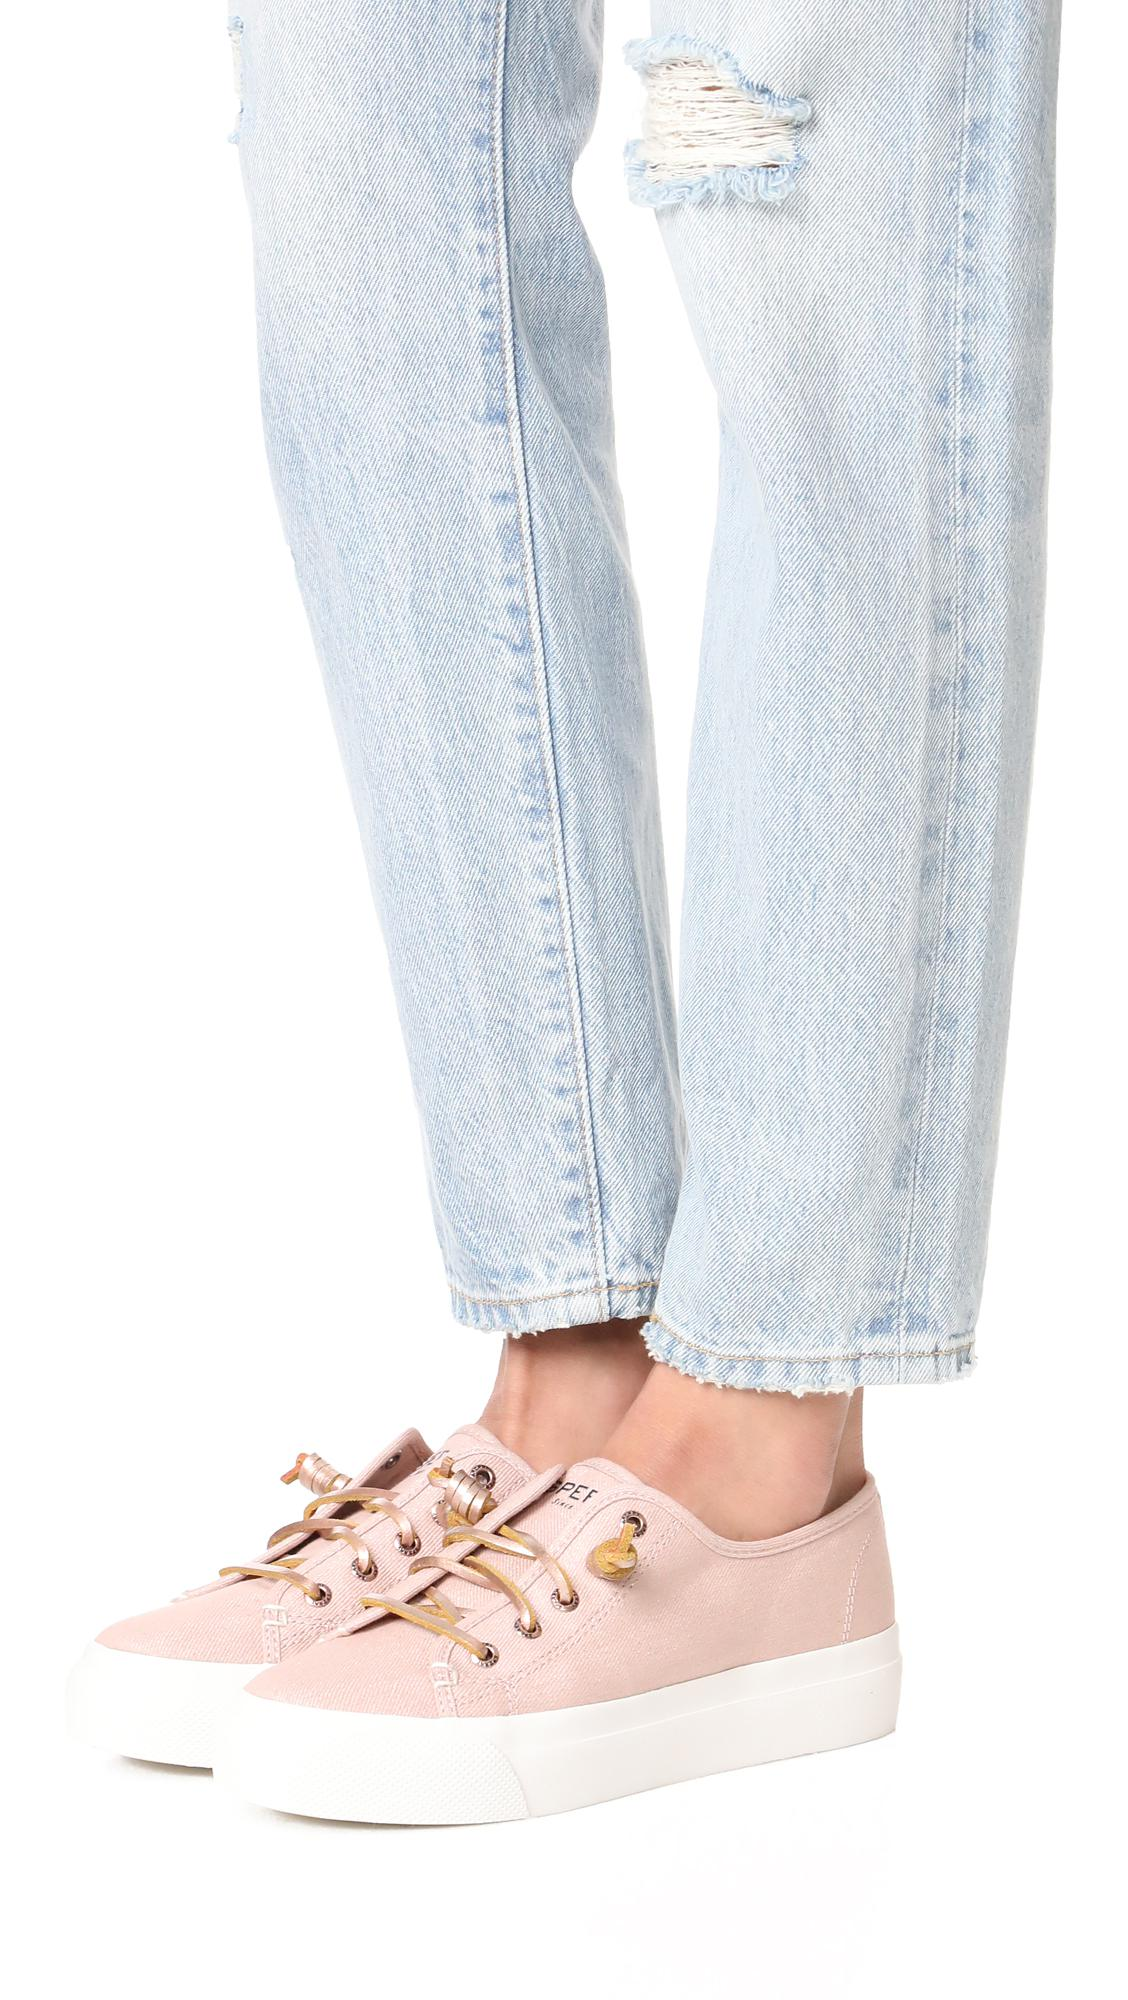 3183a6dc2c08 Lyst - Sperry Top-Sider Sky Sail Metallic Sneakers